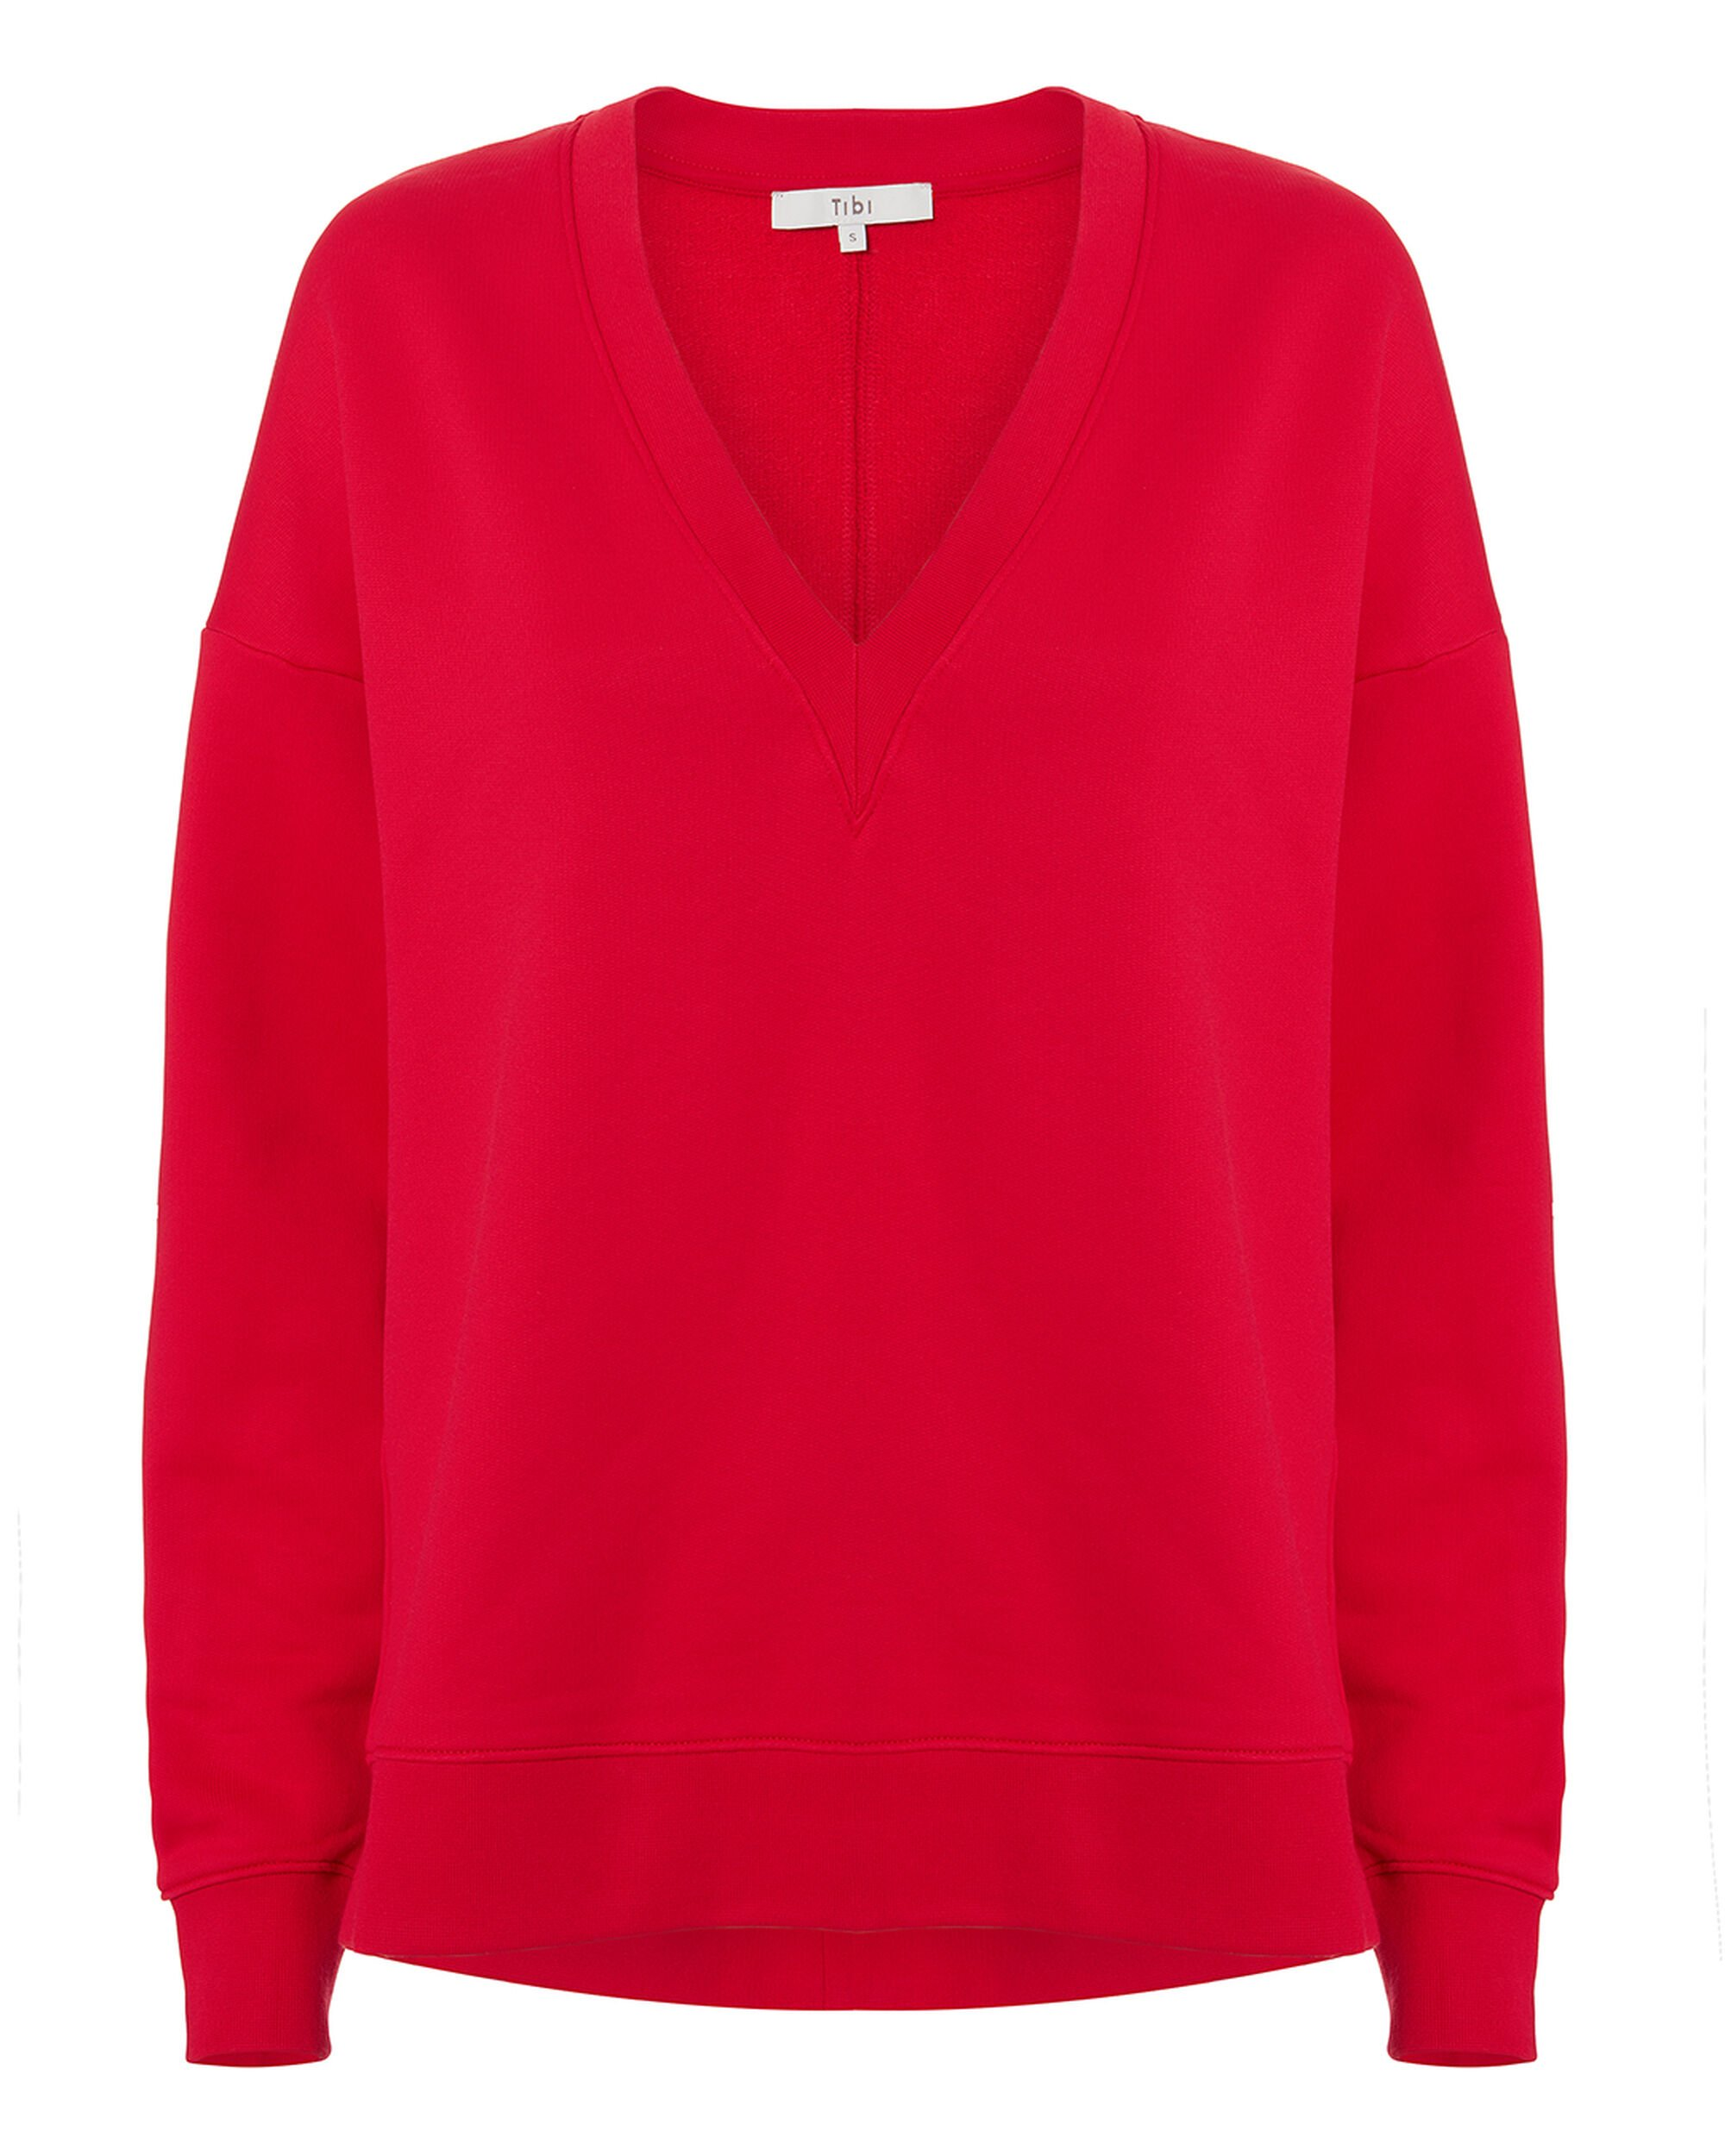 Slouchy Red Sweatshirt, RED, hi-res